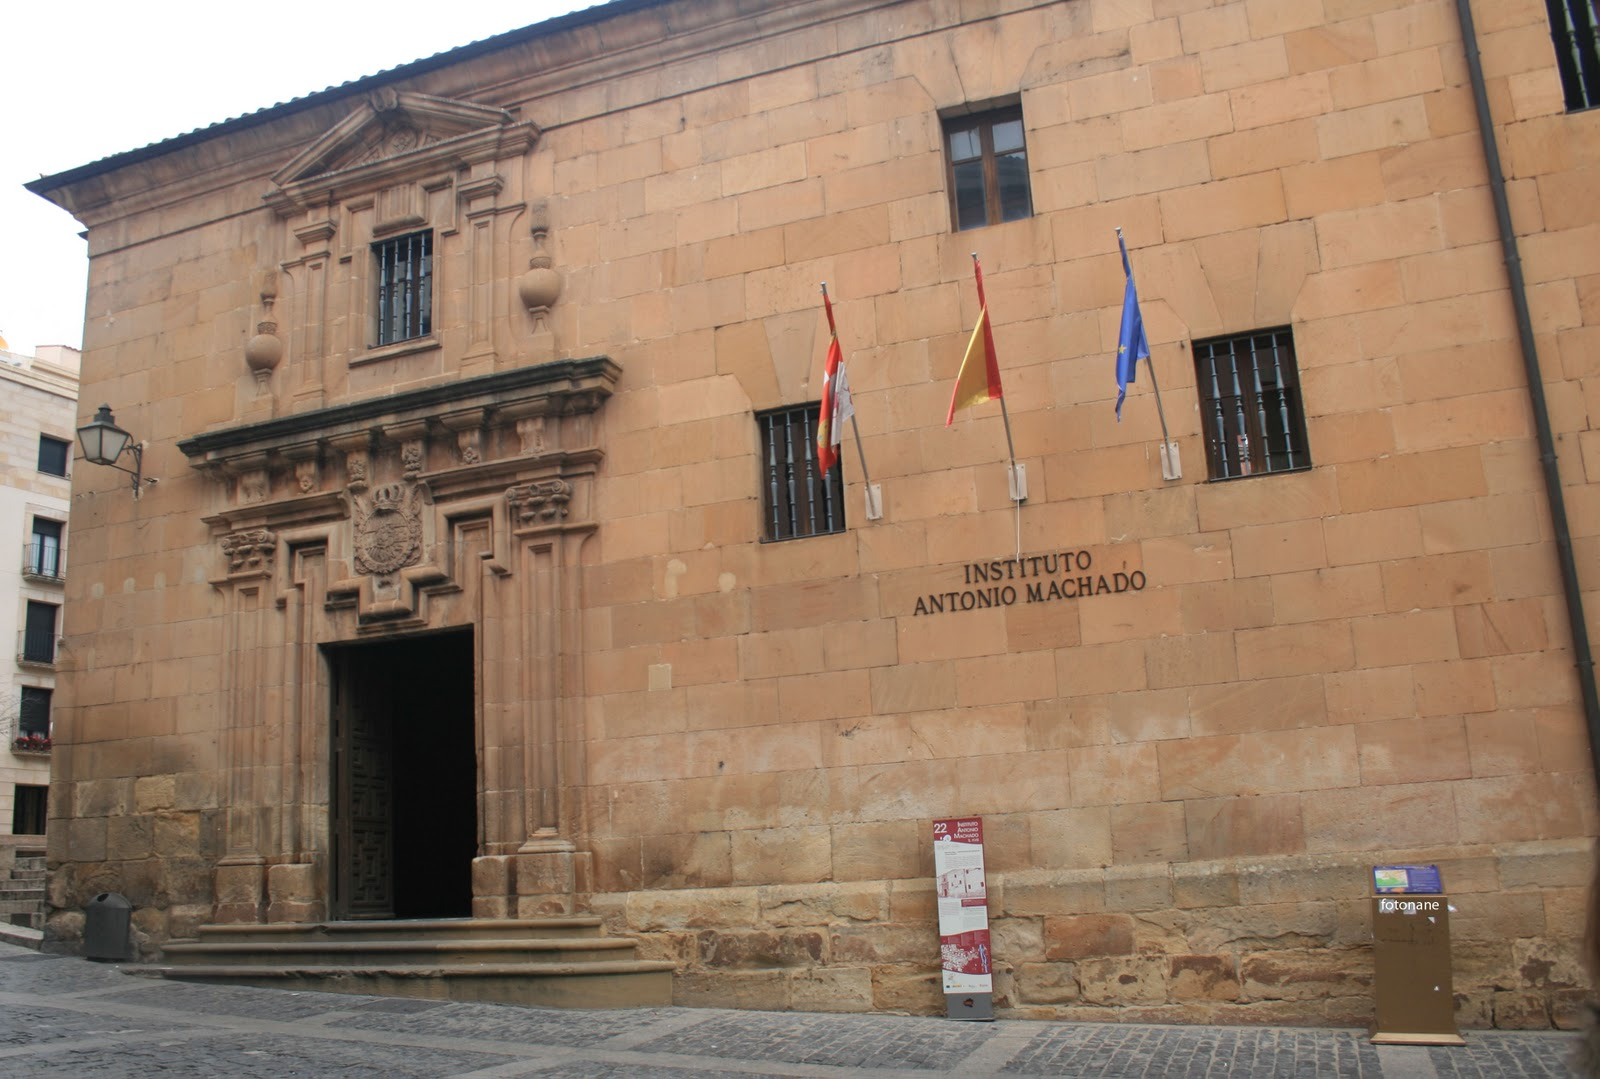 IES Antonio Machado, nuestro instituto